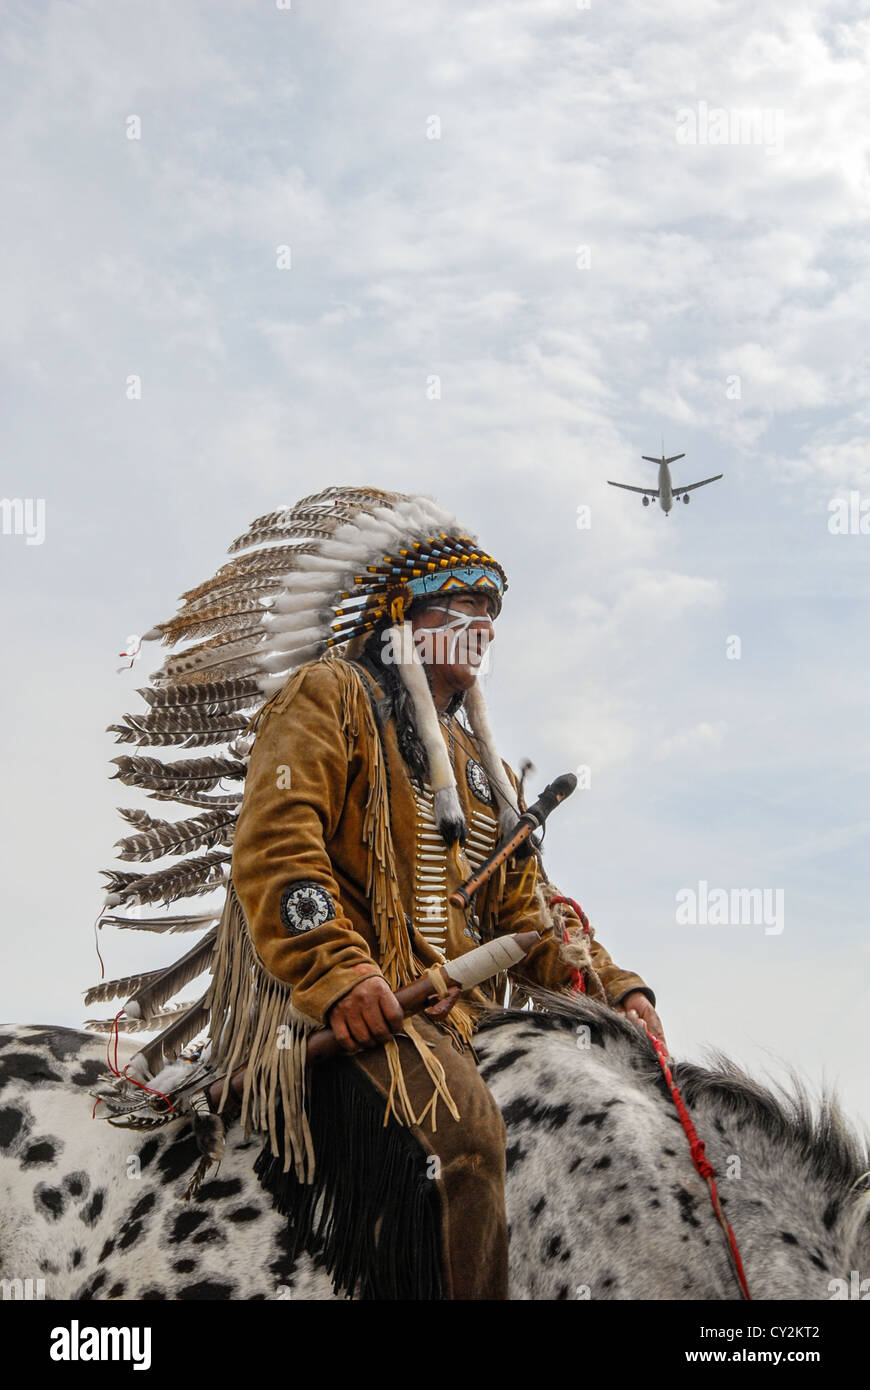 An airplane passes over a Native American in traditional dress - Stock Image